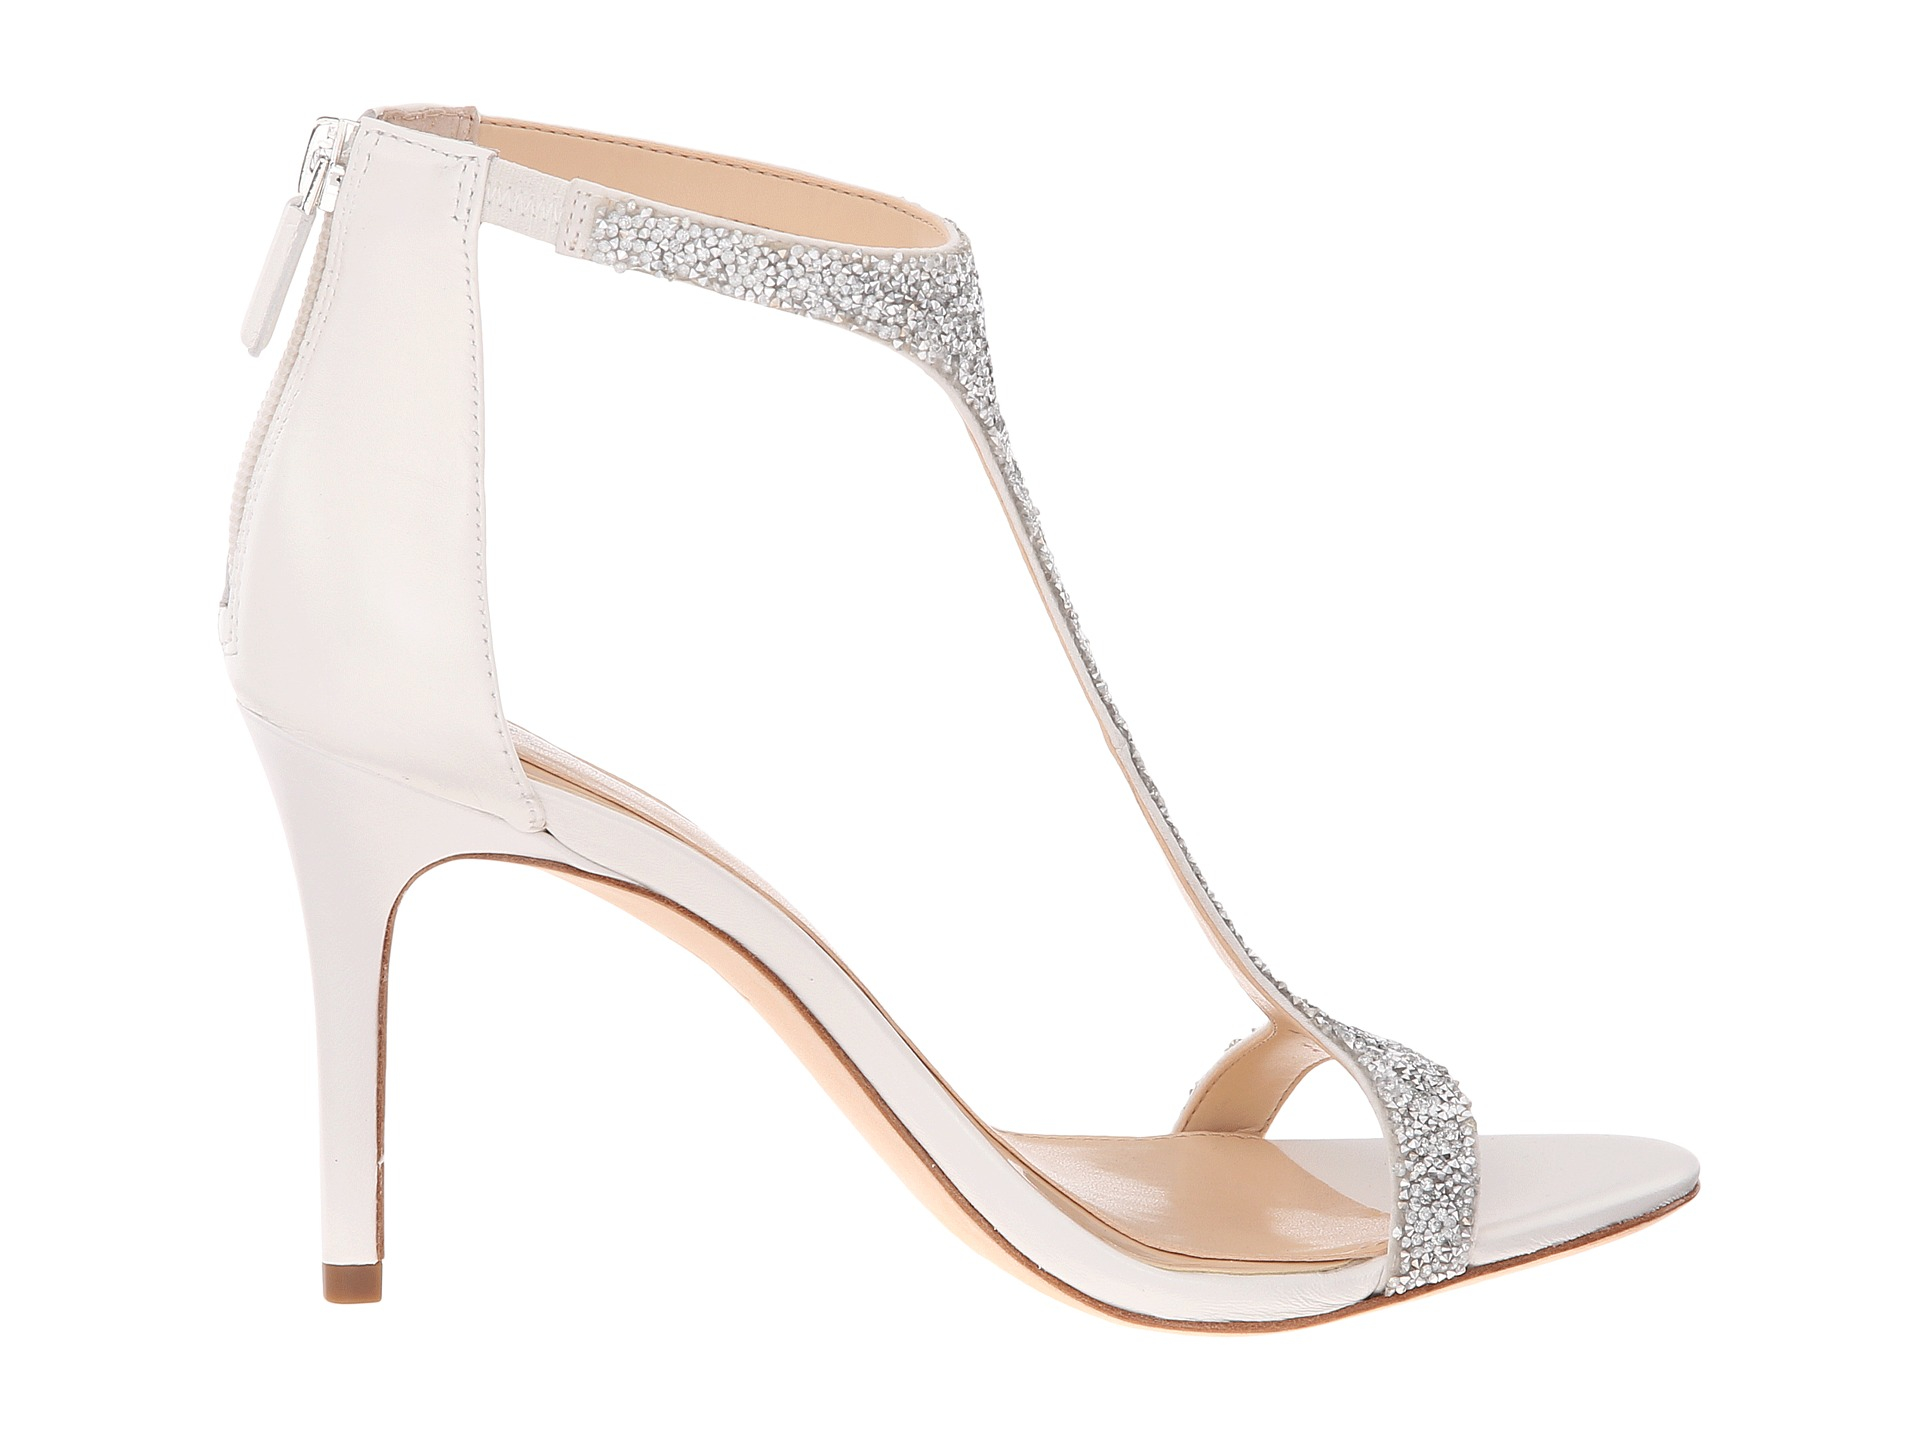 8eefaf3e7260 Lyst - Imagine Vince Camuto Phoebe in White